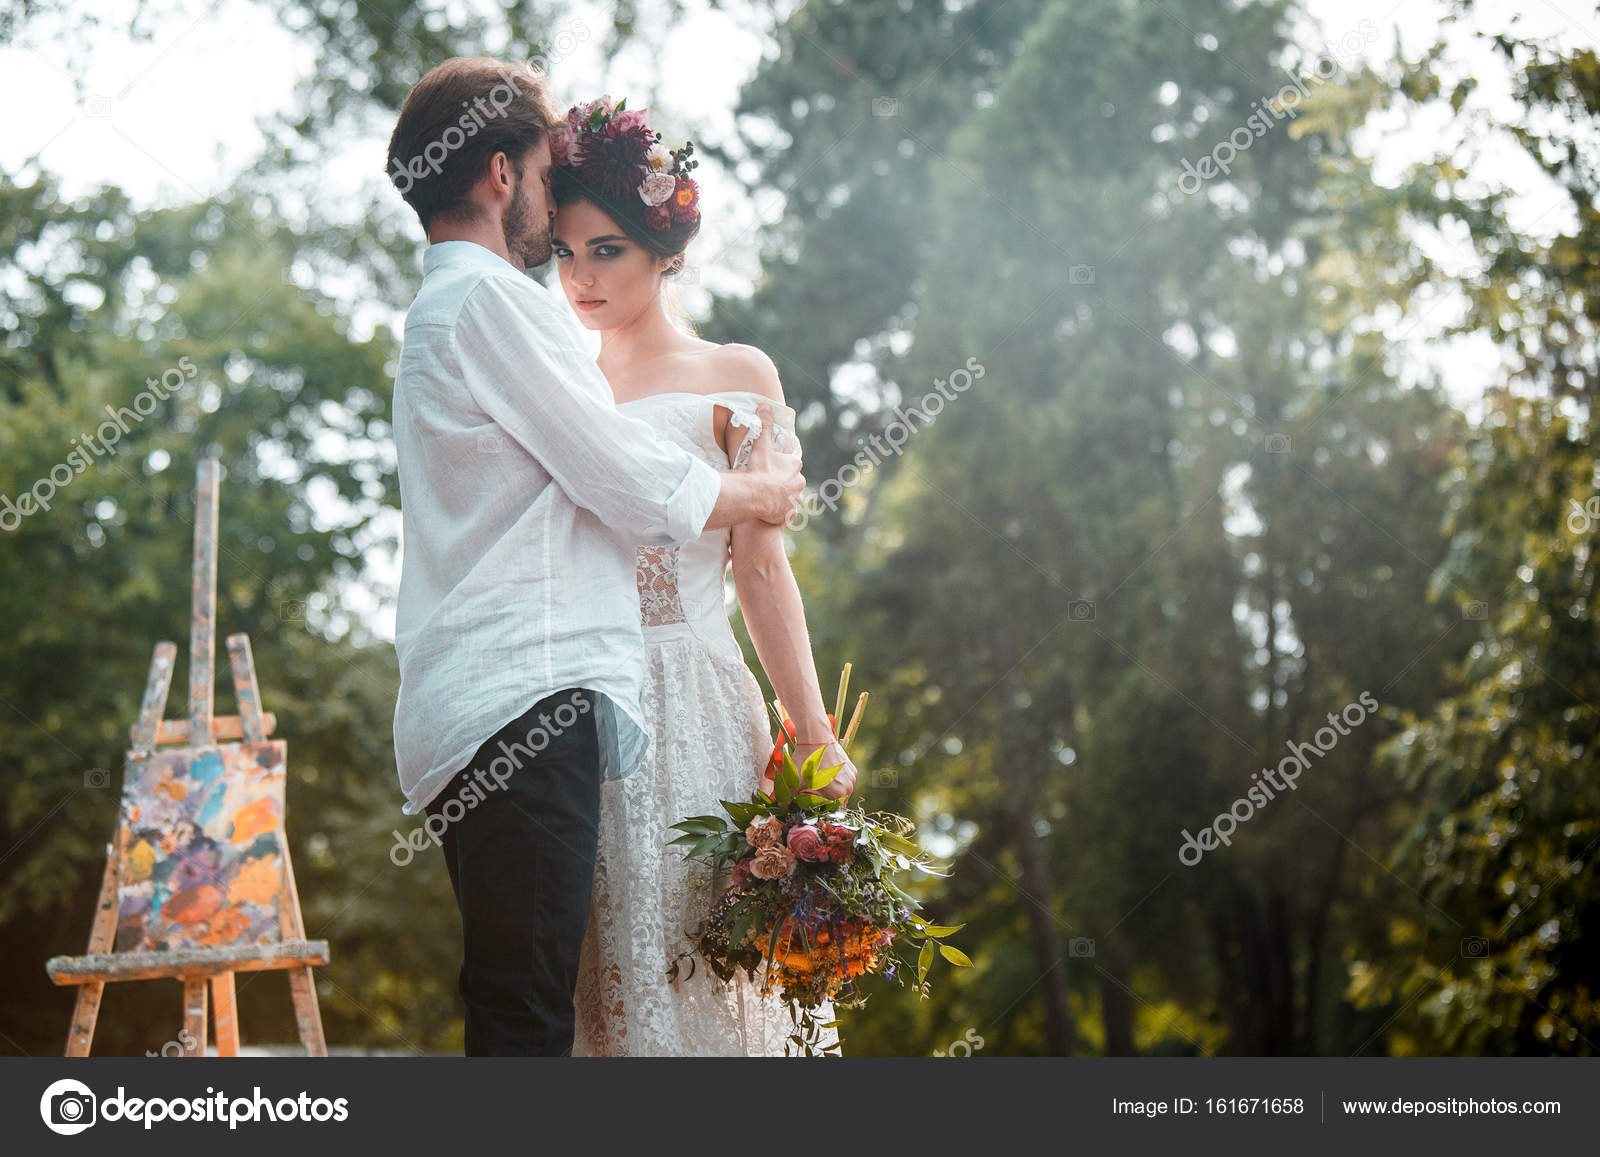 Wedding Decoration In The Style Of Boho Floral Arrangement